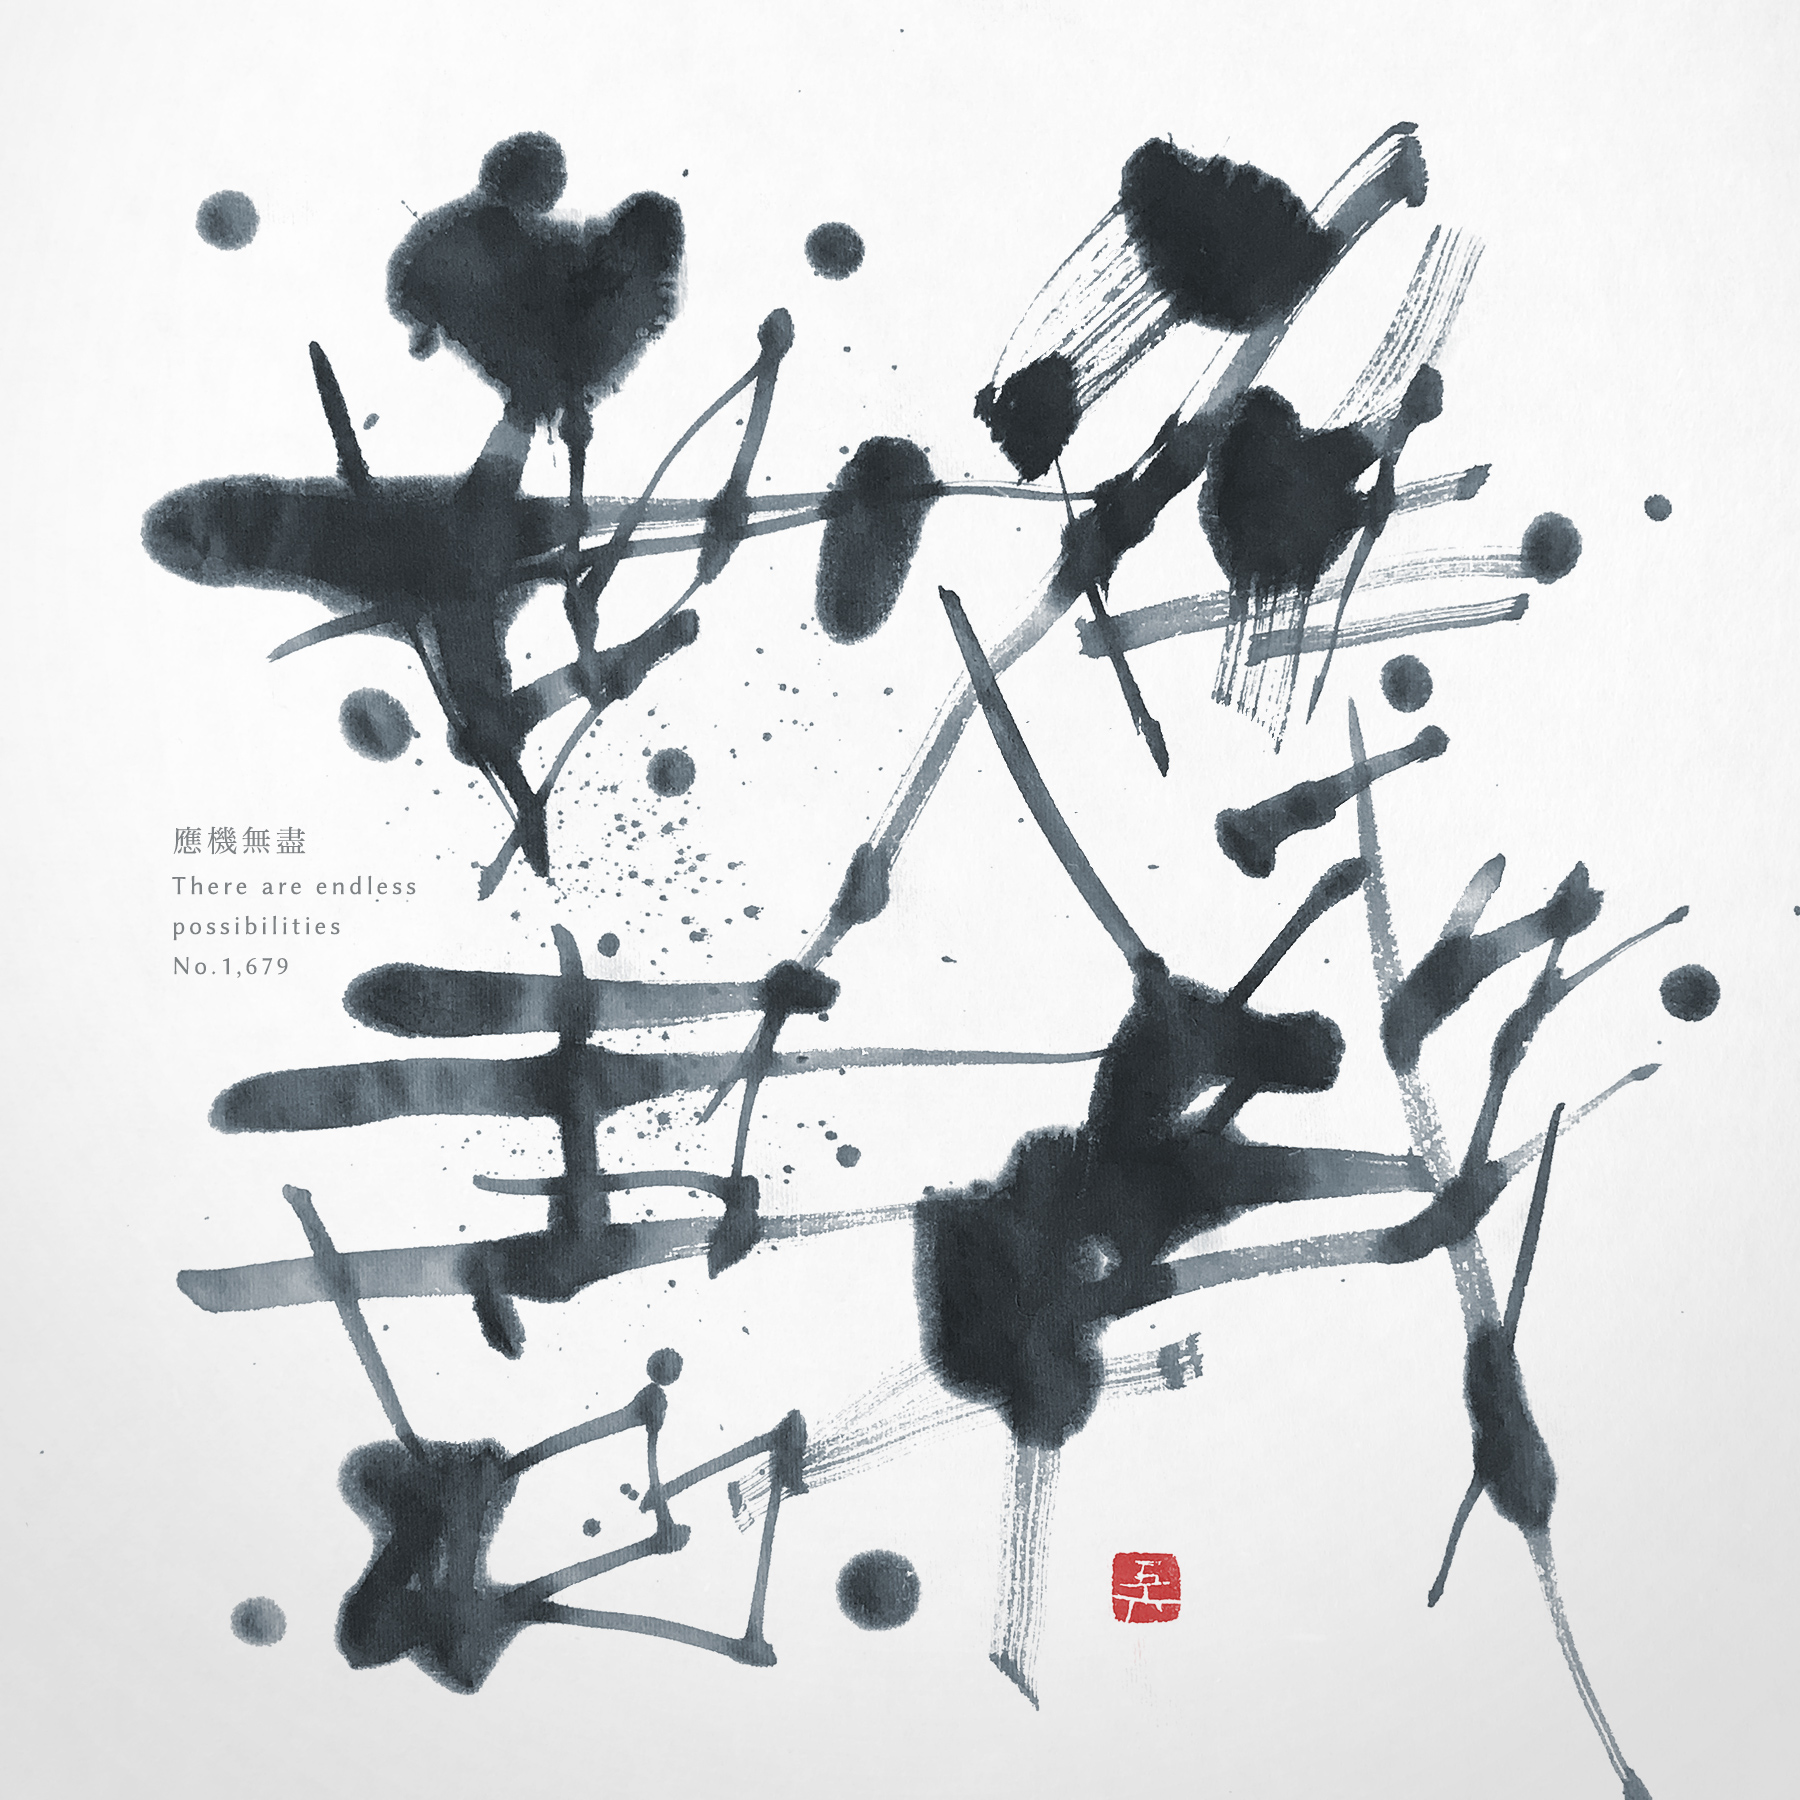 應機無盡 | there are endless possibilities 書道作品 japaneseart japanese calligraphy 書家 田川悟郎 Goroh Tagawa